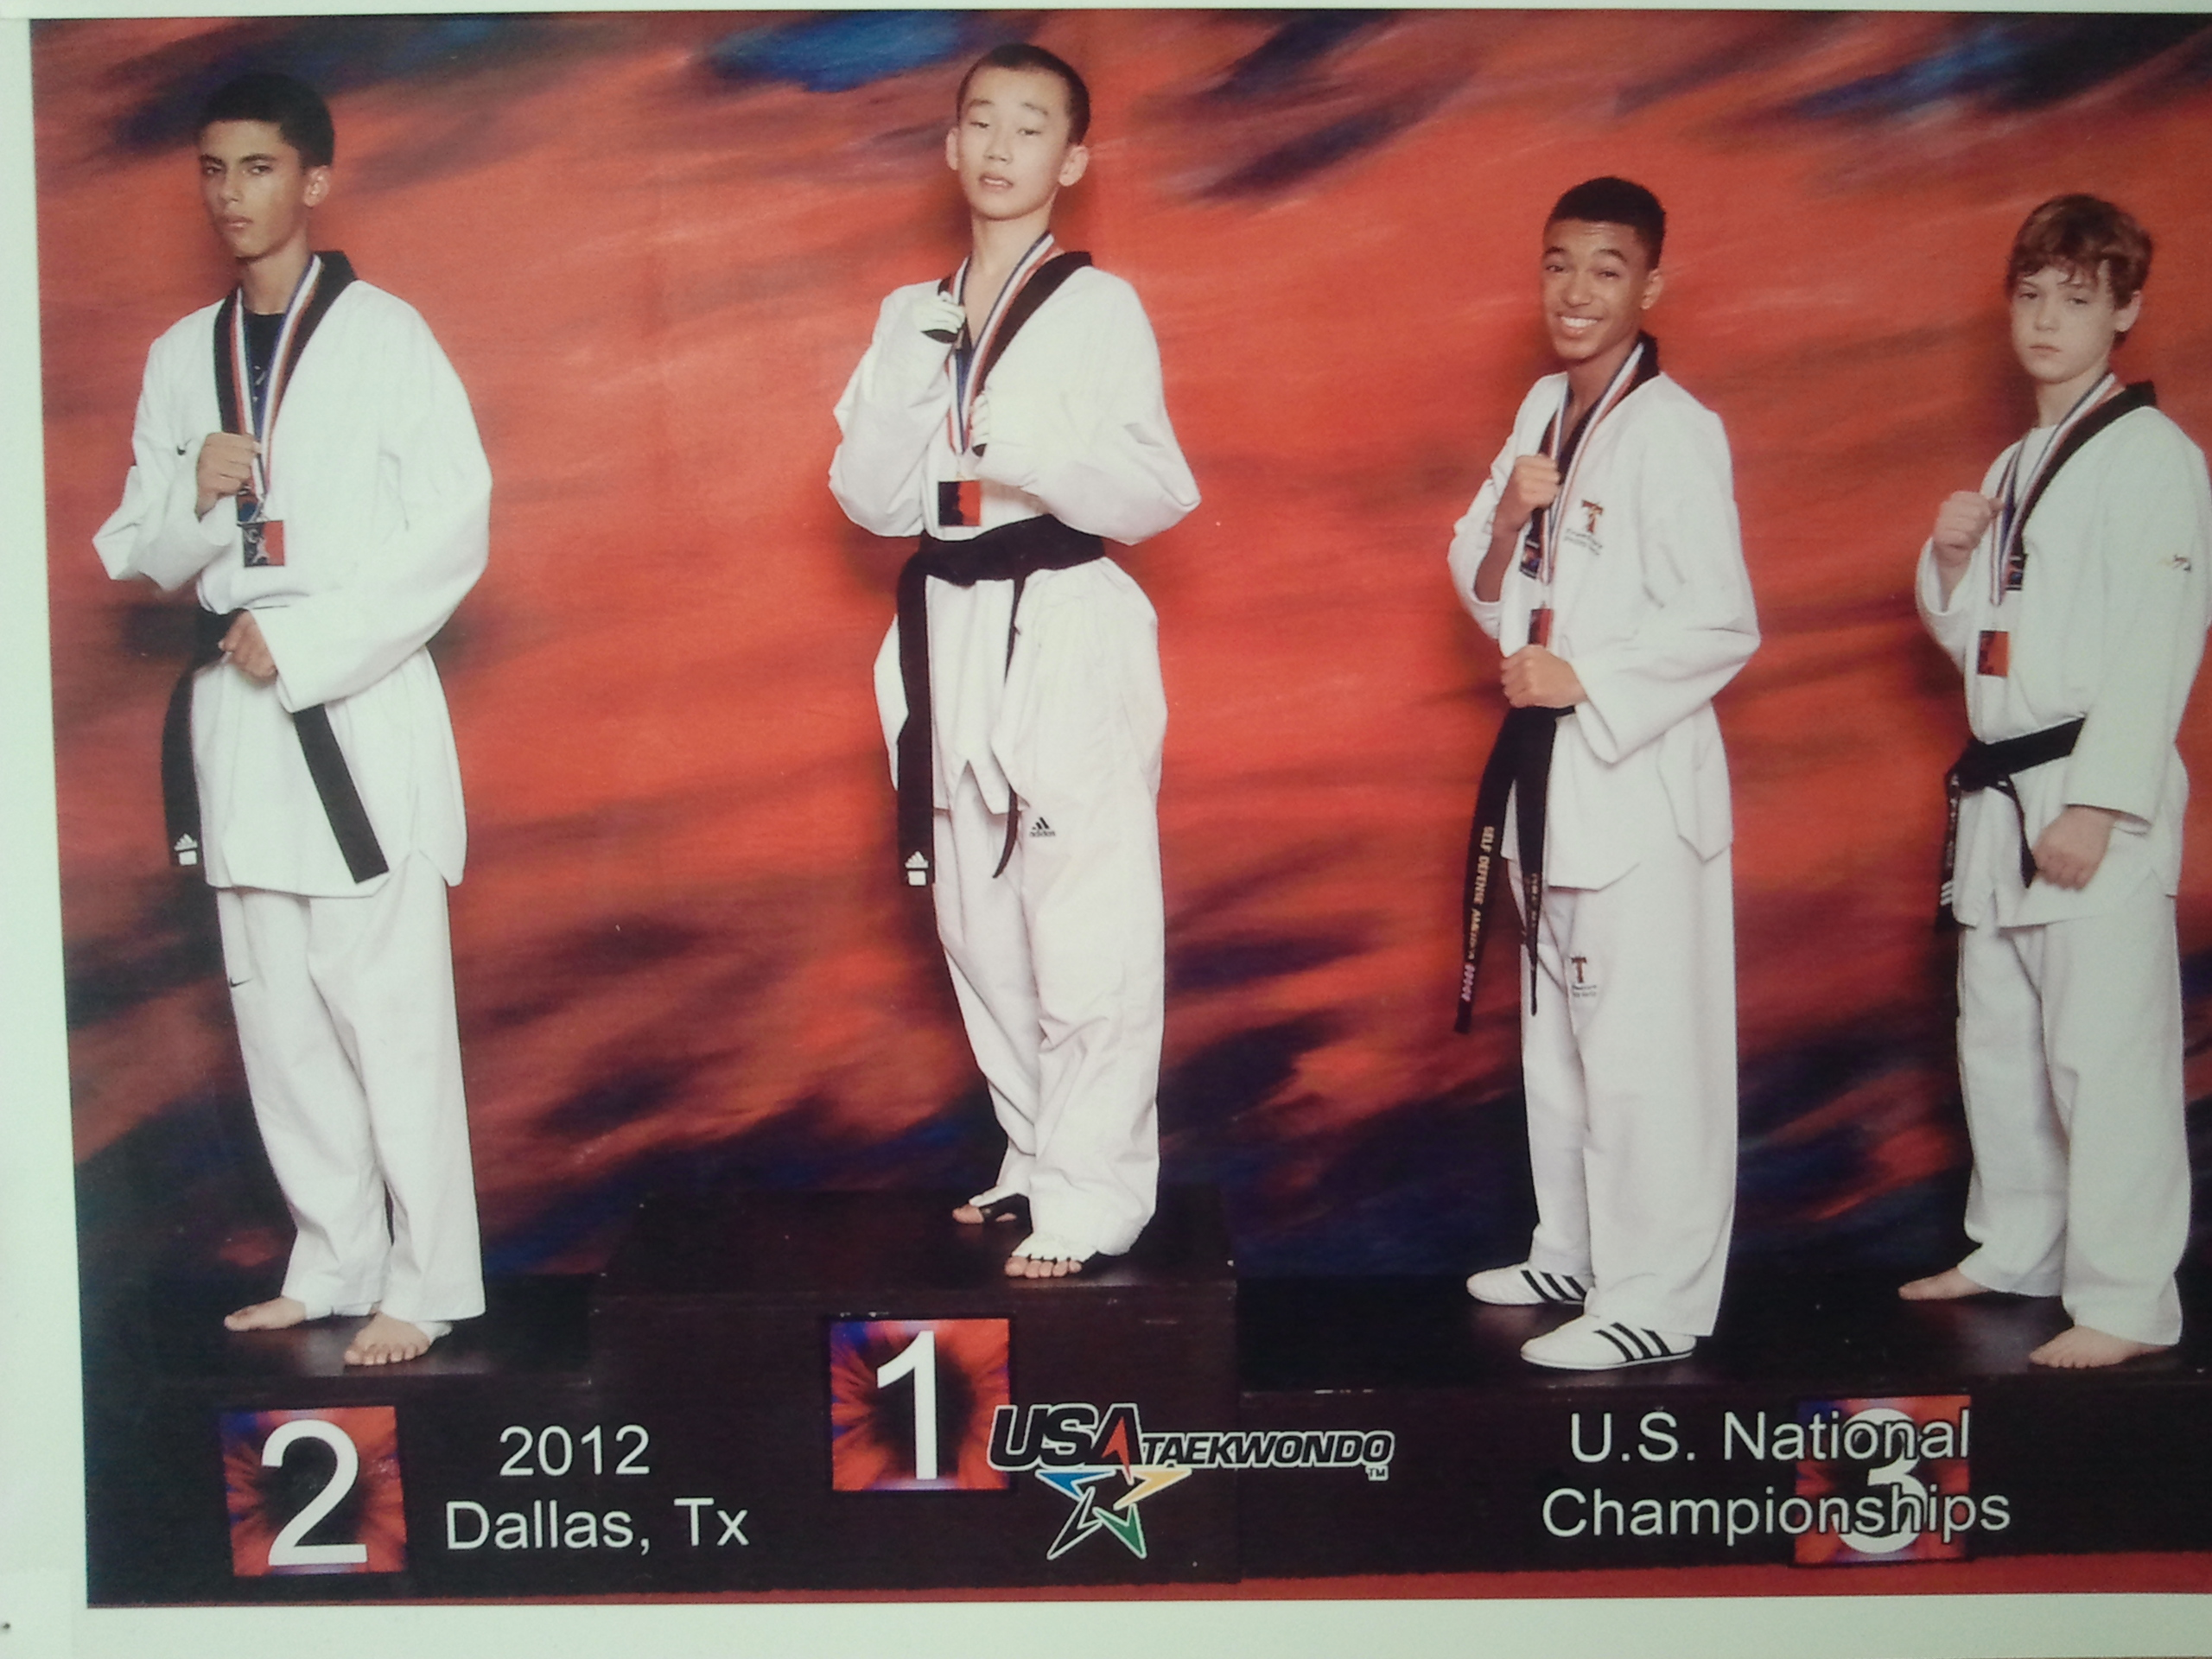 Siwon Kim US National Champion 2012